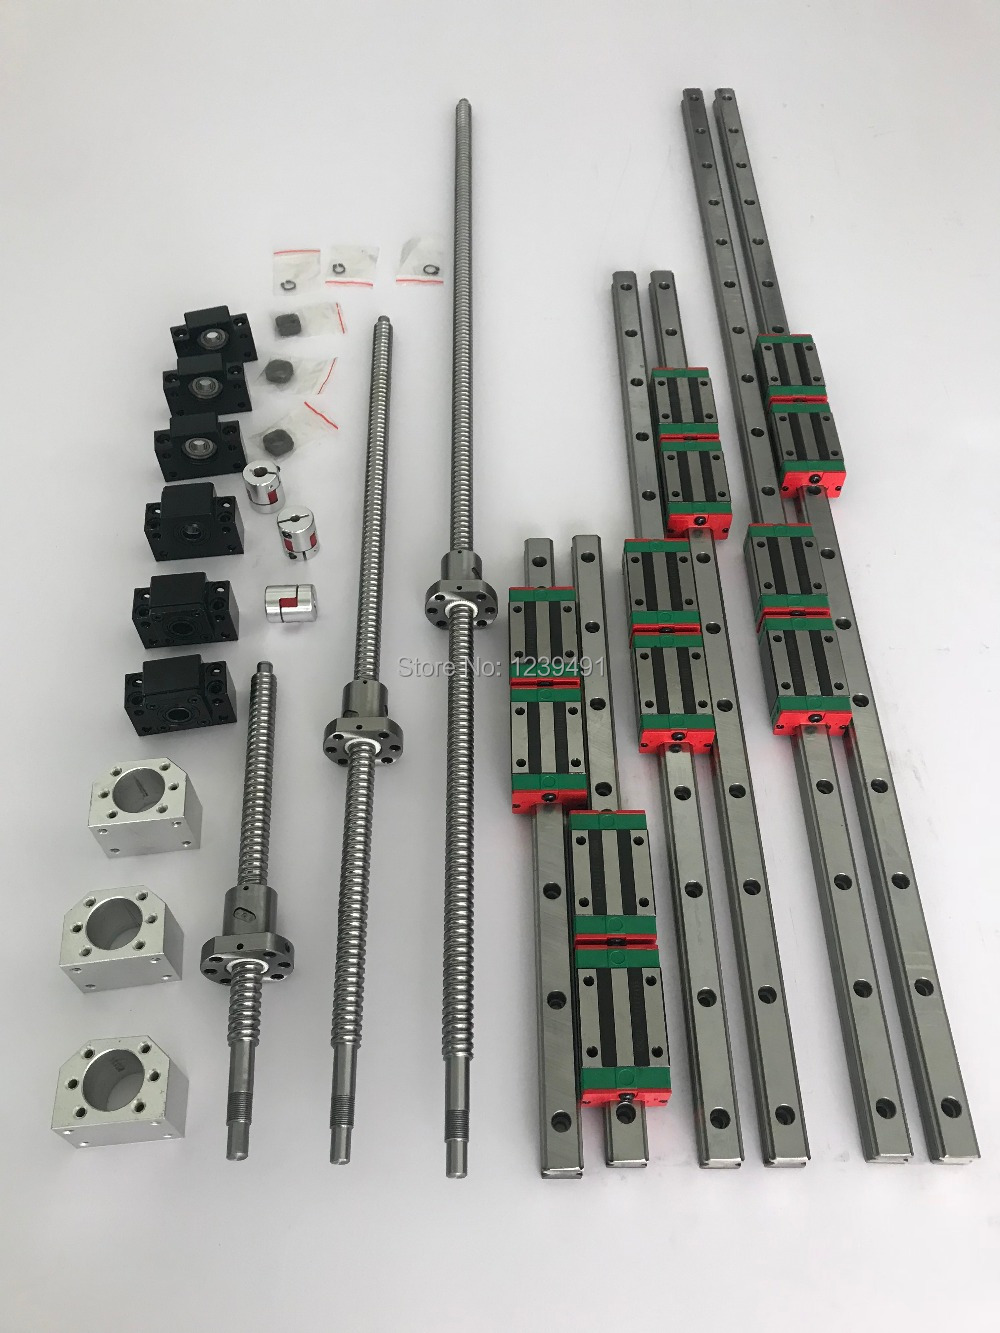 6 sets Square Linear guide HGR20- 400/700/1000mm + Ballscrew SFU1610- 400/700/1000mm + BK/B12 + Nut housing + Coupling CNC parts 3 linear guidesbr16 300 700 1000 1000mm 4ball screws 1605 300 700 1000 1000mm 4bkbf12 4ballnut housing 4coupling 6 35 10